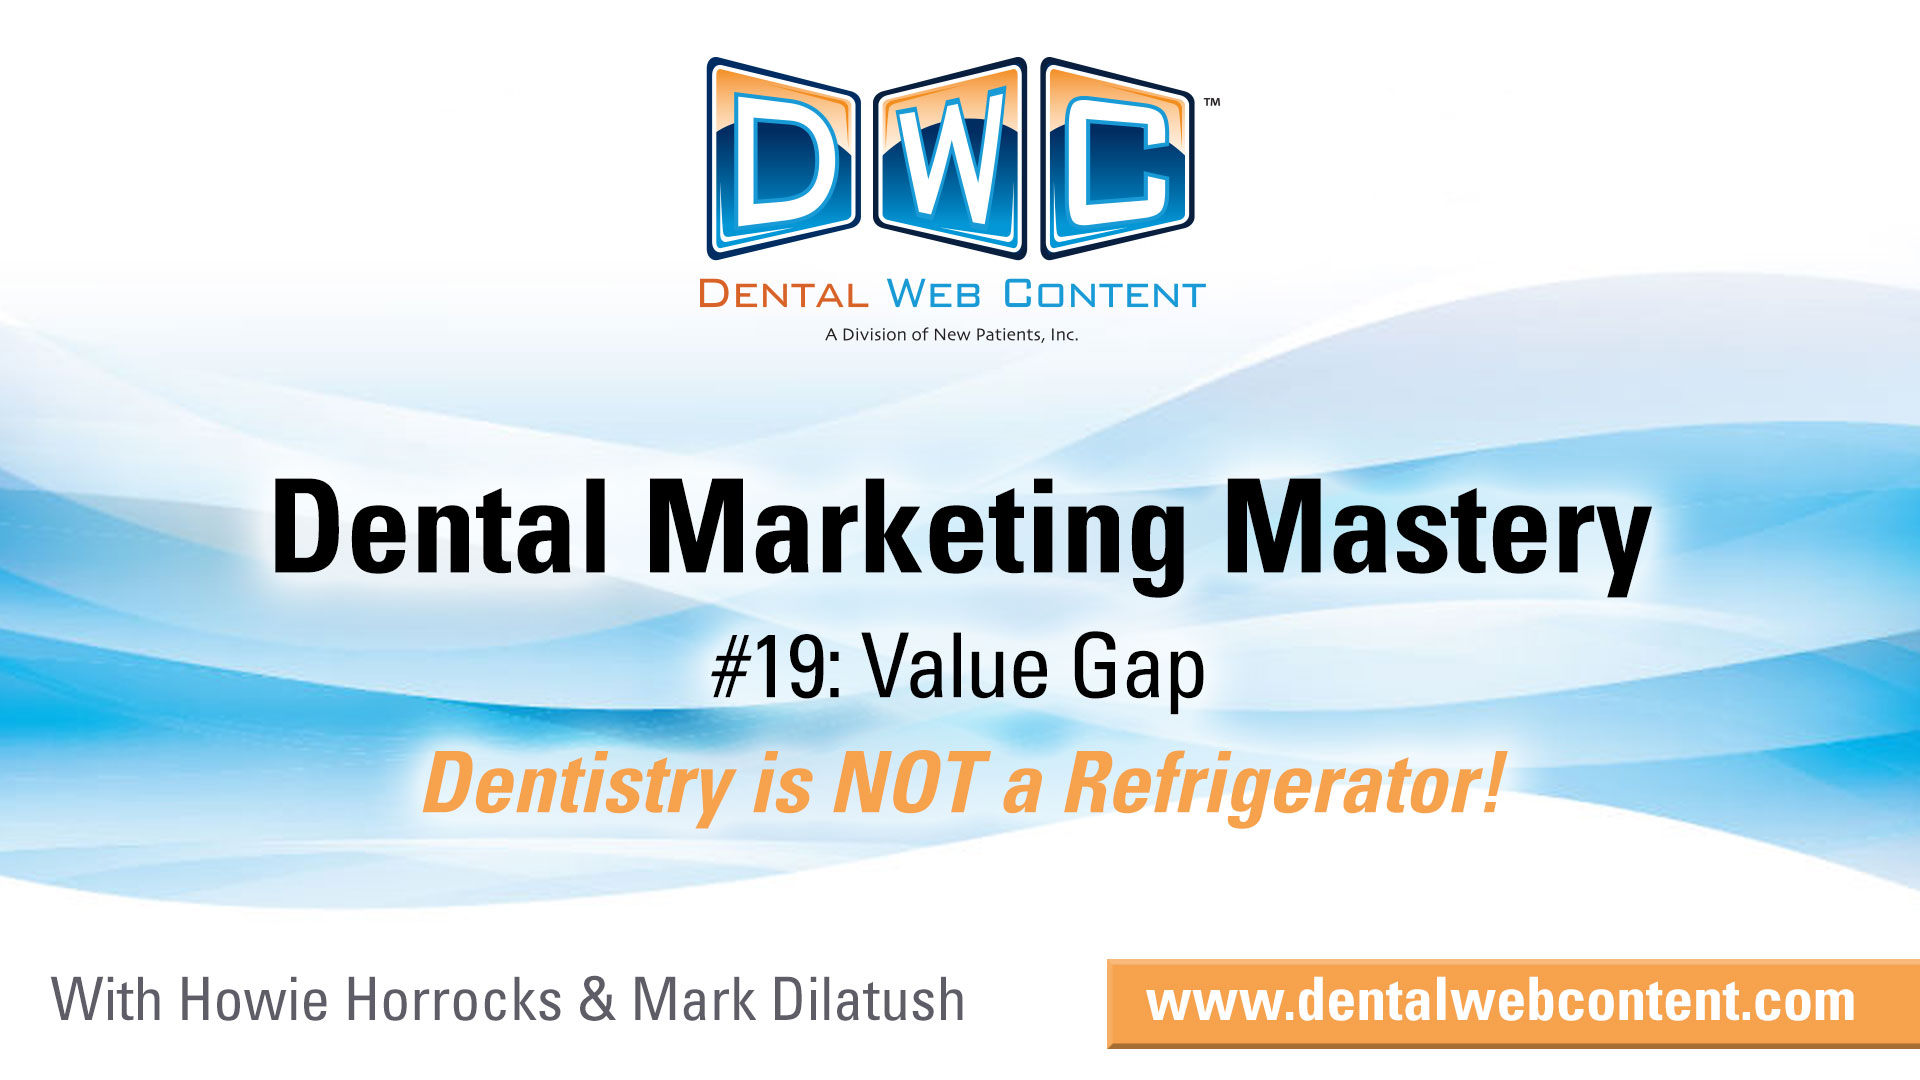 #19: Value Gap. Dentistry - It is NOT a Refrigerator!